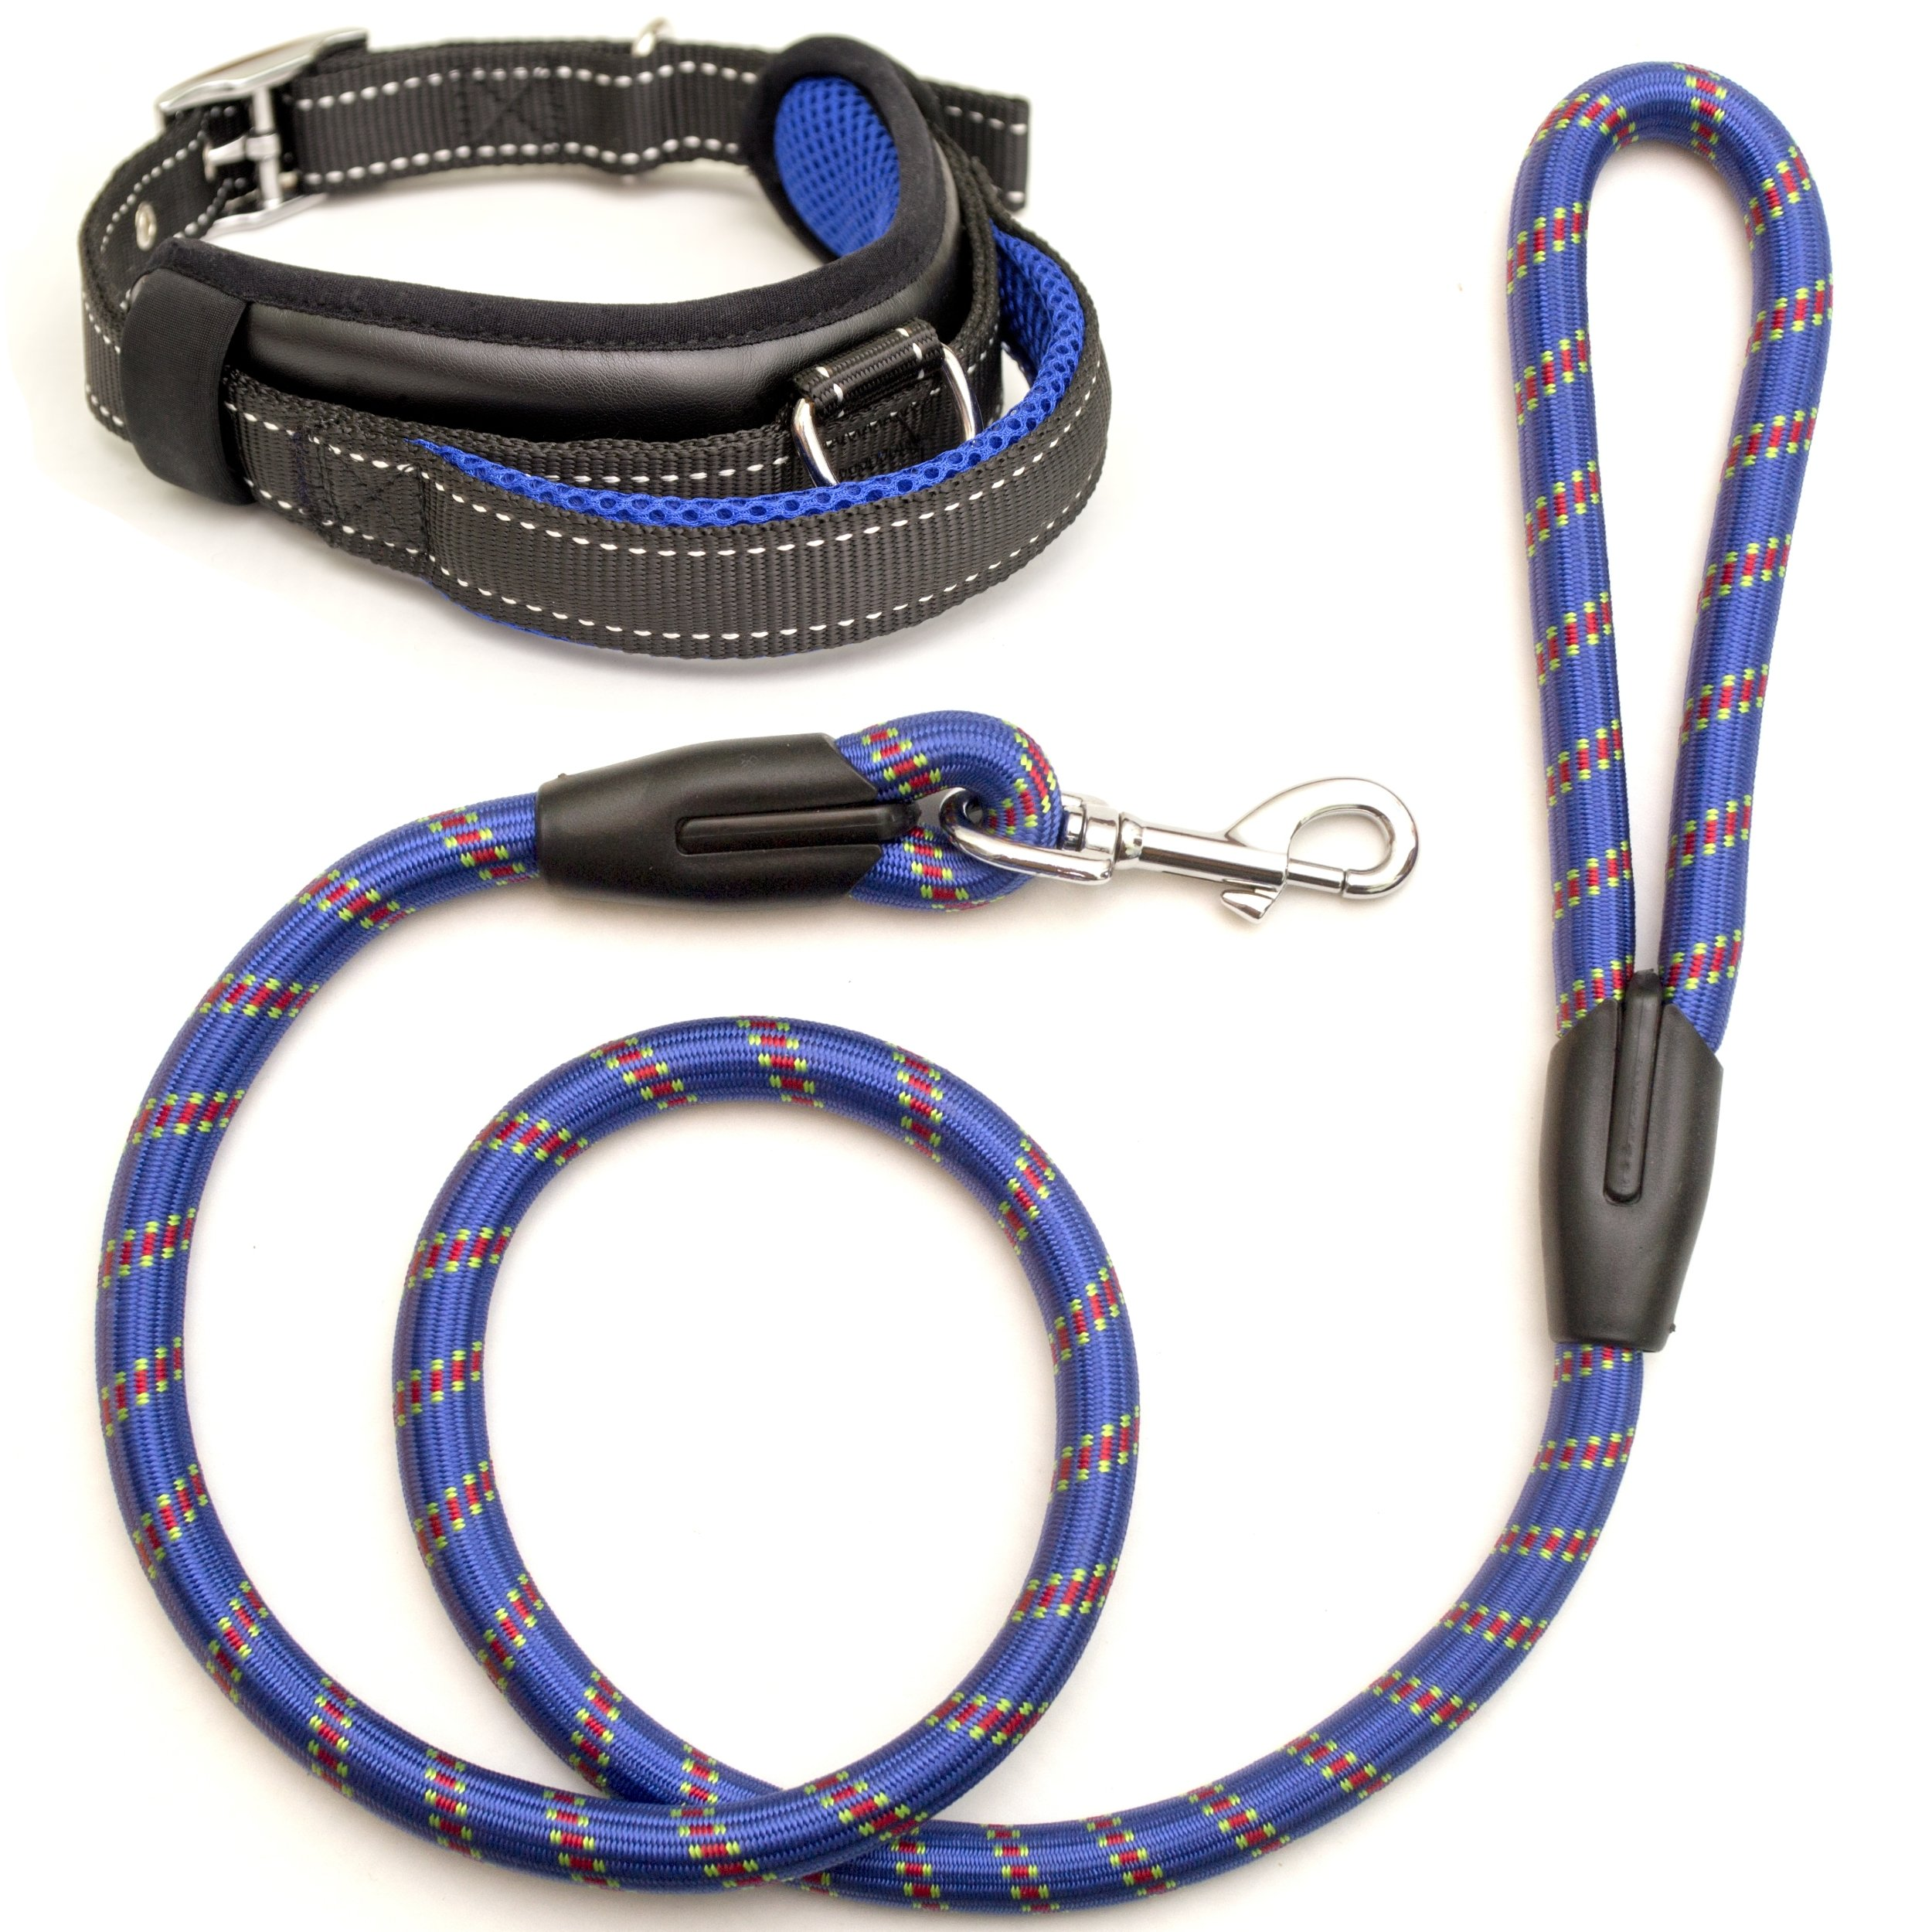 Kamooved Chew Resistant Dog Leash and Heavy Duty Collar – Strong Mountain Rope Leash Set for Medium and Large Breeds – Suitable for Training and Walking in Crowded Areas – Pet Owners Gift (Red) (Blue)